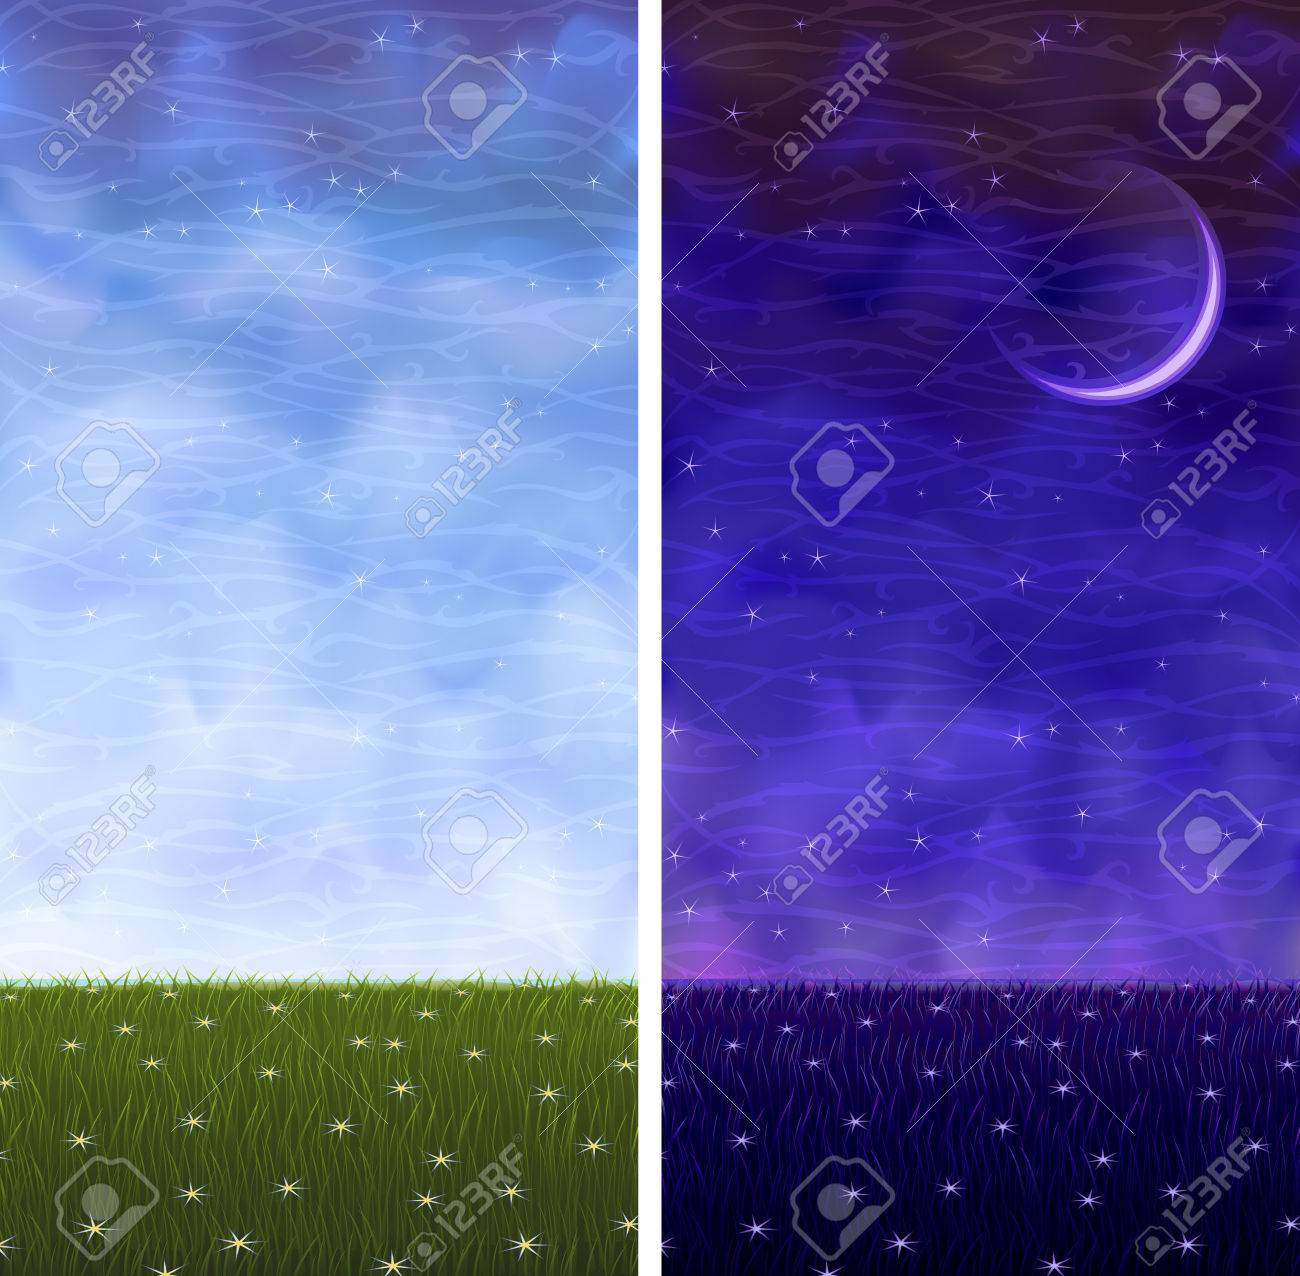 Summer grassy vertical day and night landscapes Stock Vector - 5353491